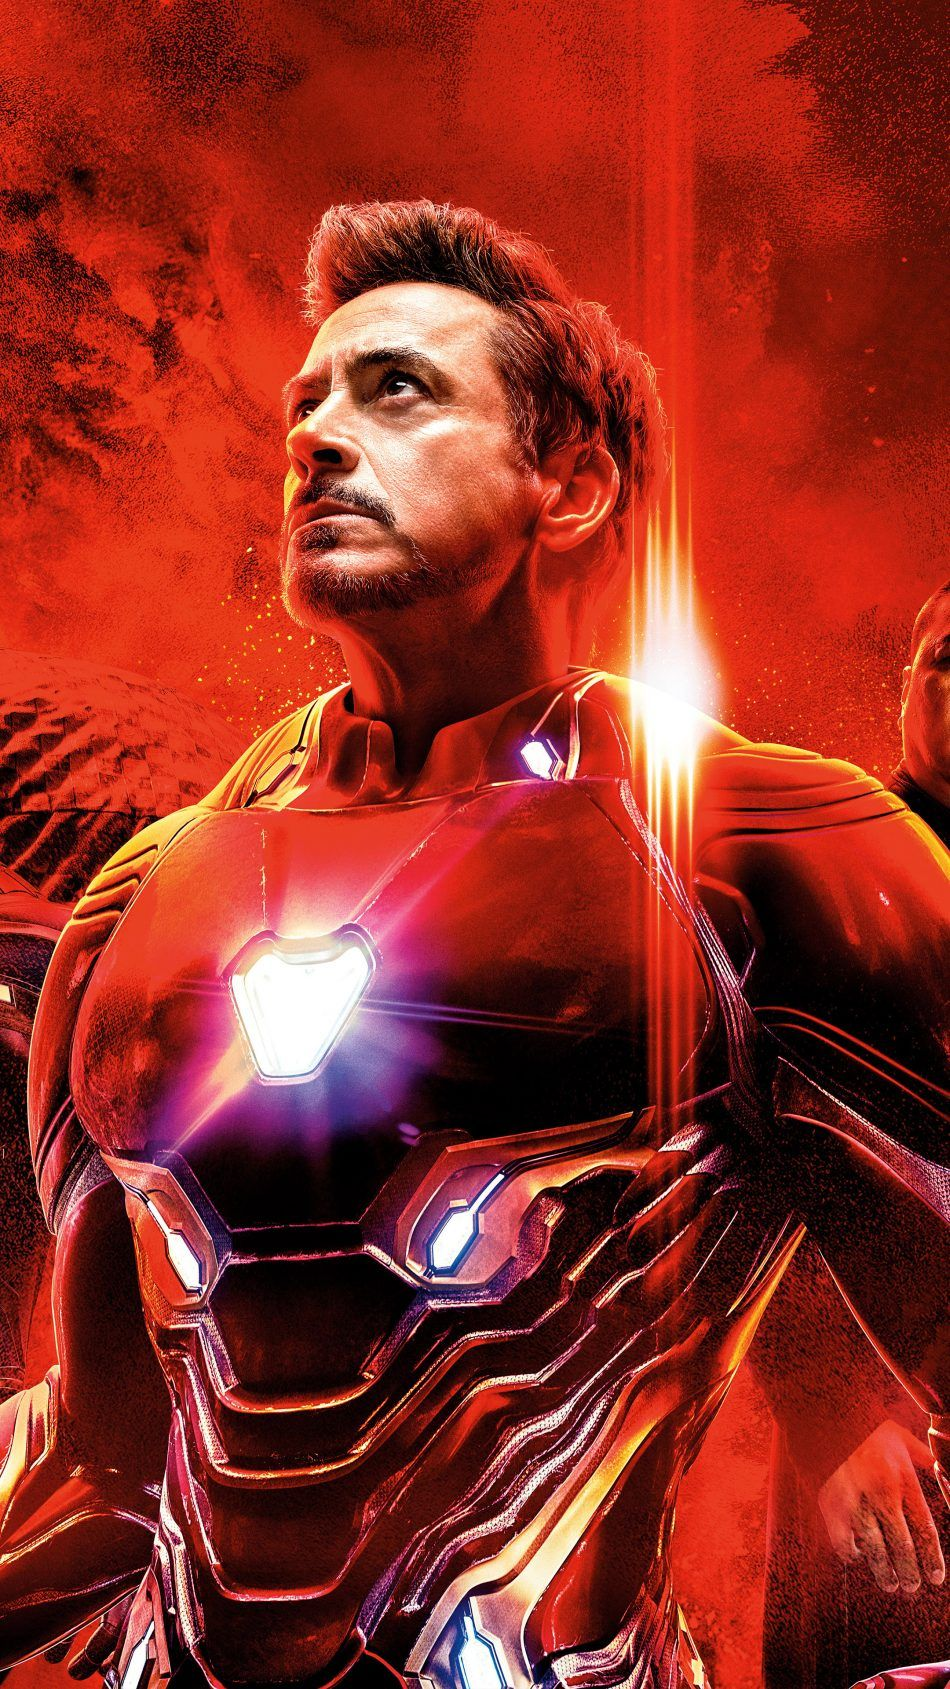 Iron Man In Avengers Endgame Iron Man Poster Iron Man Hd Wallpaper Iron Man Avengers